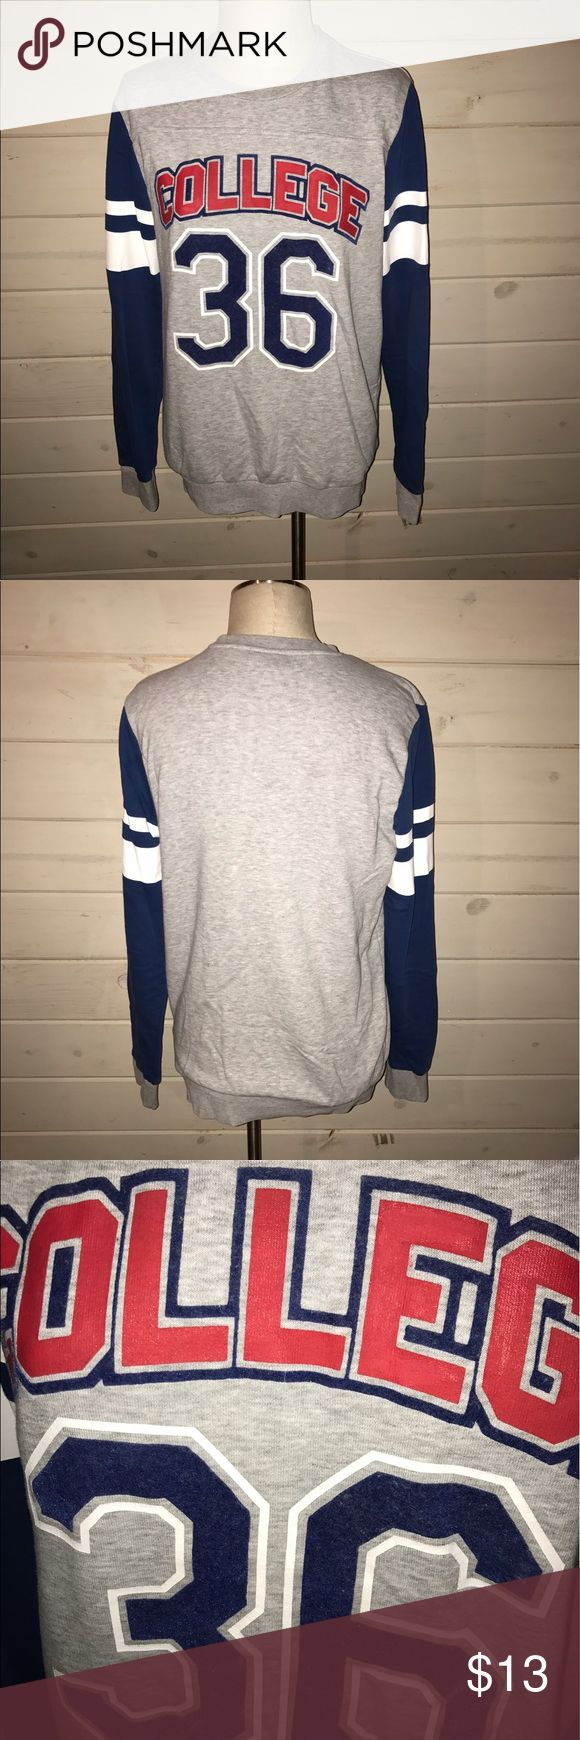 H&M college sweater Worn a couple times. Fits a small and medium Divided Sweaters Crew & Scoop Necks